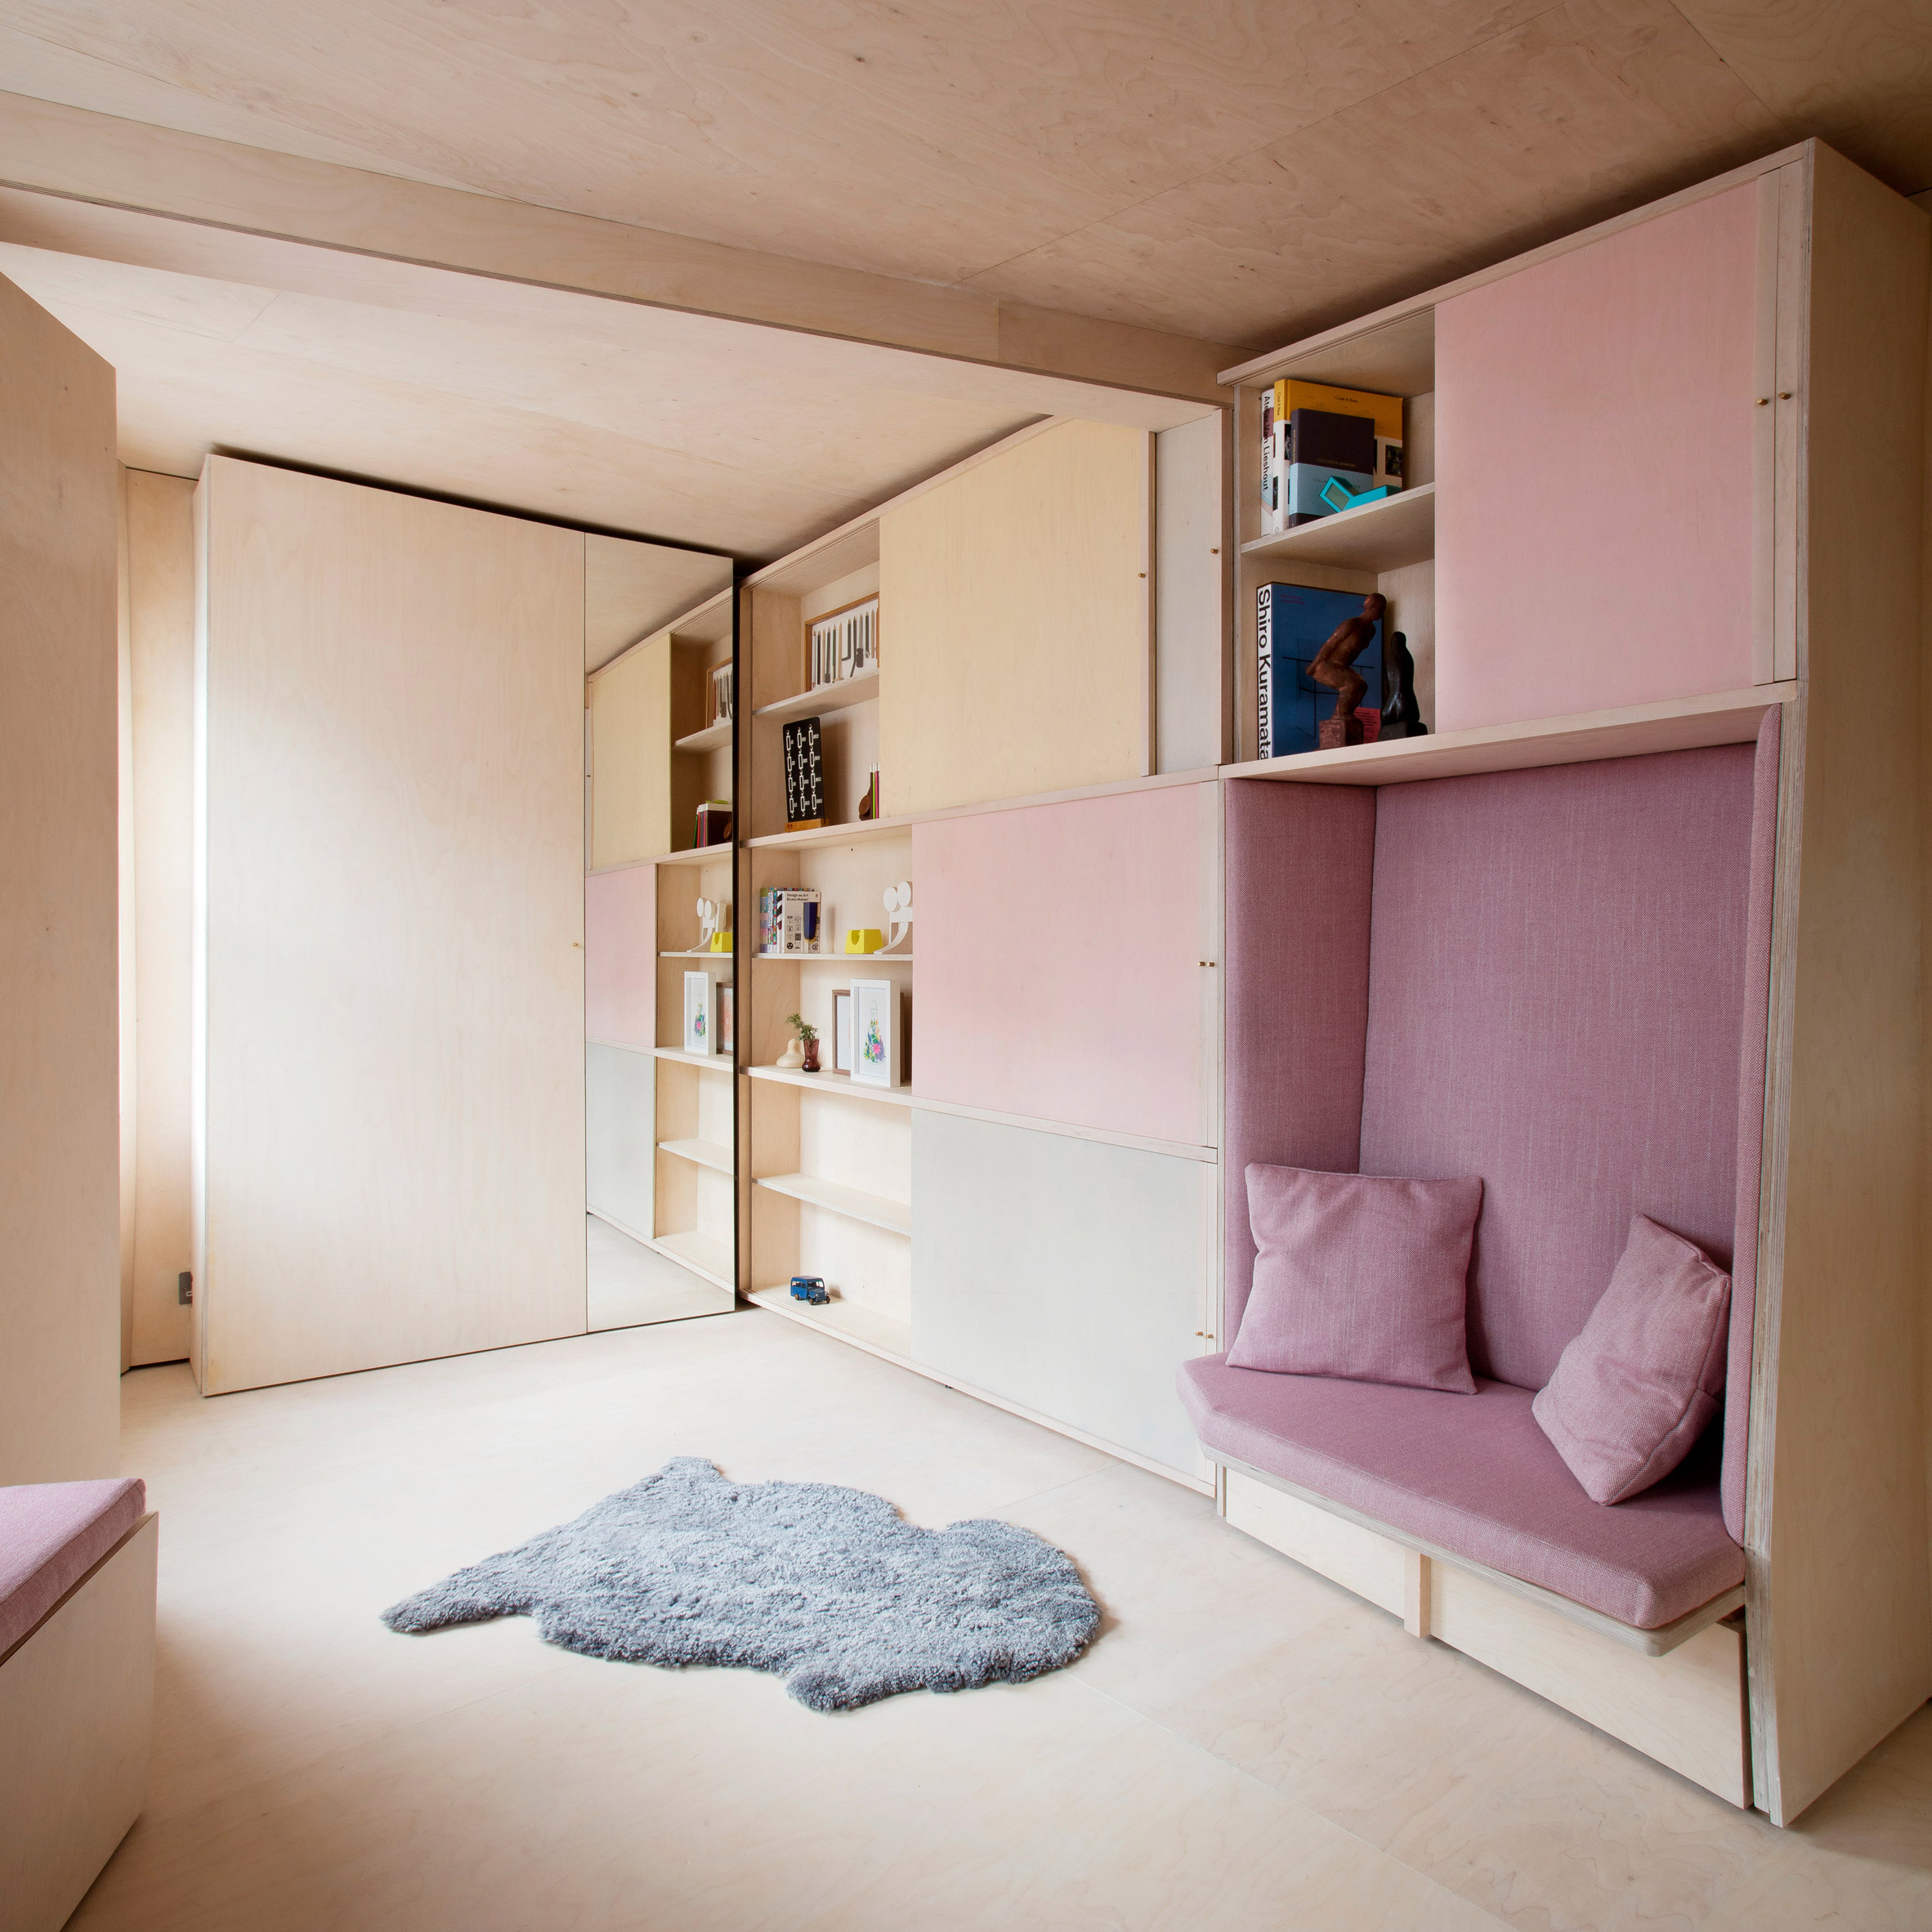 Smallest House In The World 2017 Inside micro homes design and architecture | dezeen